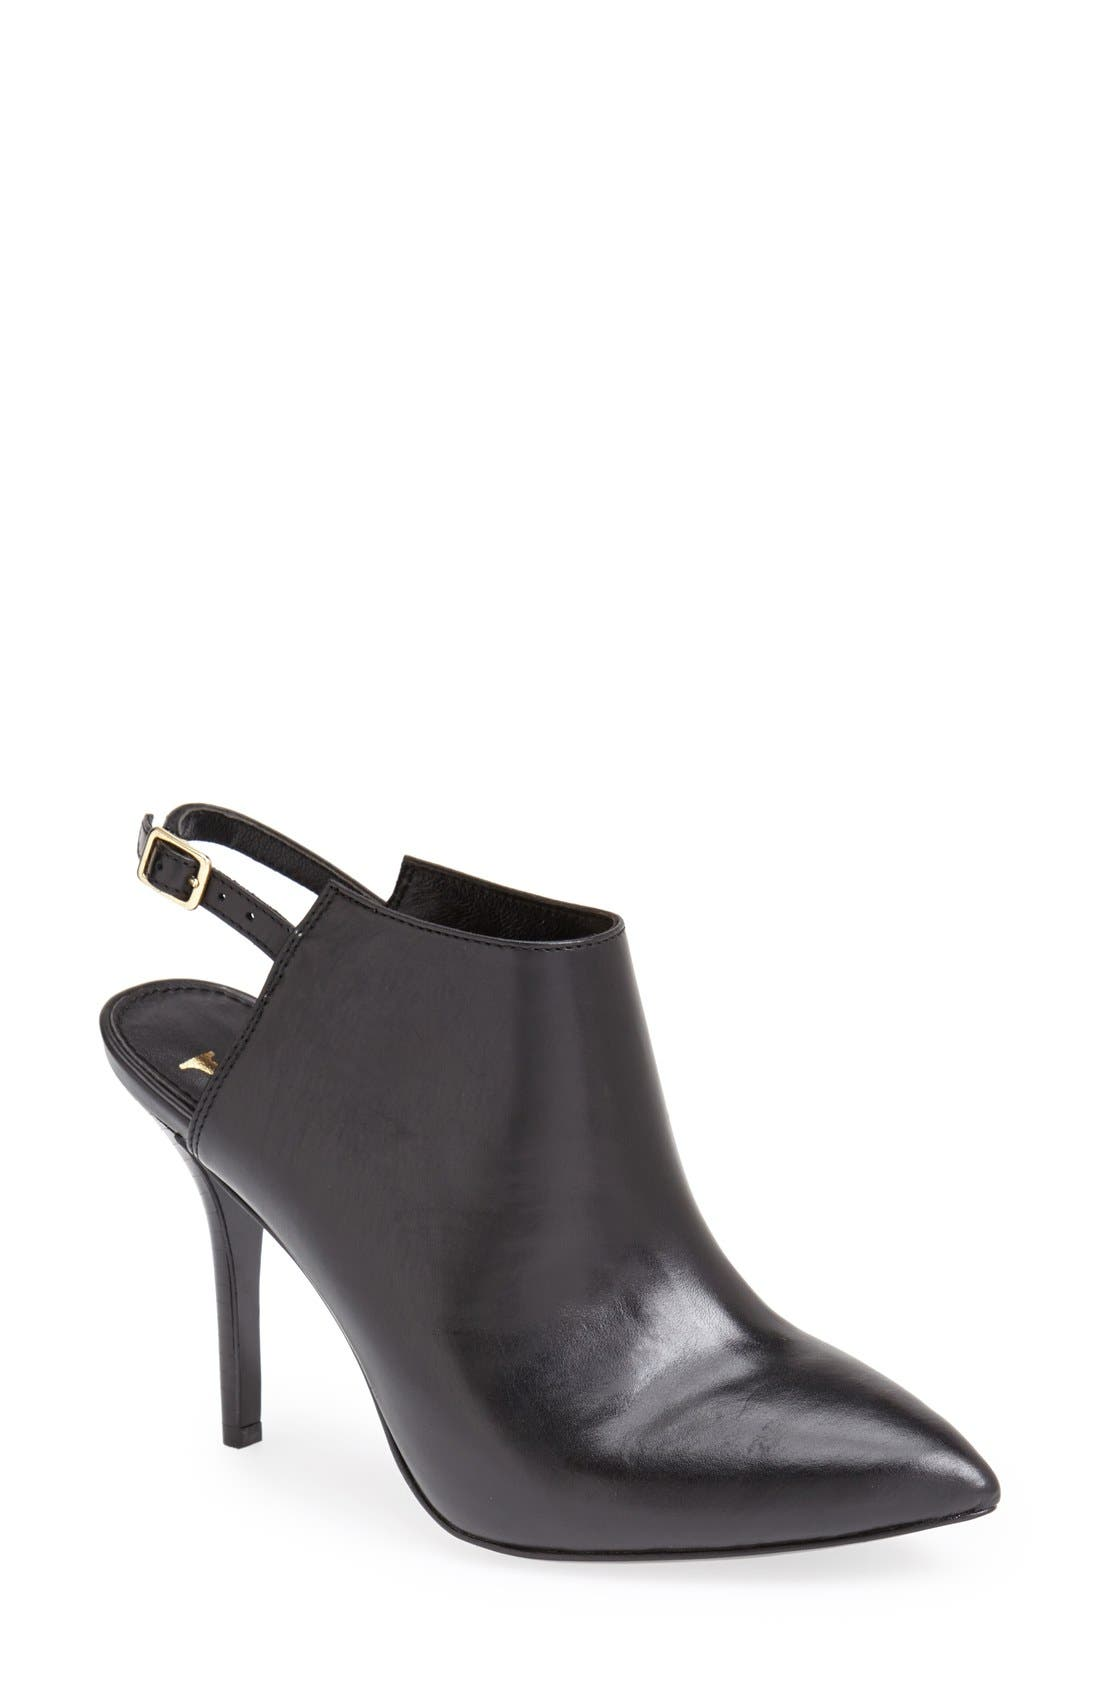 Main Image - VC Signature 'Calven' Slingback Pointy Toe Bootie (Women)